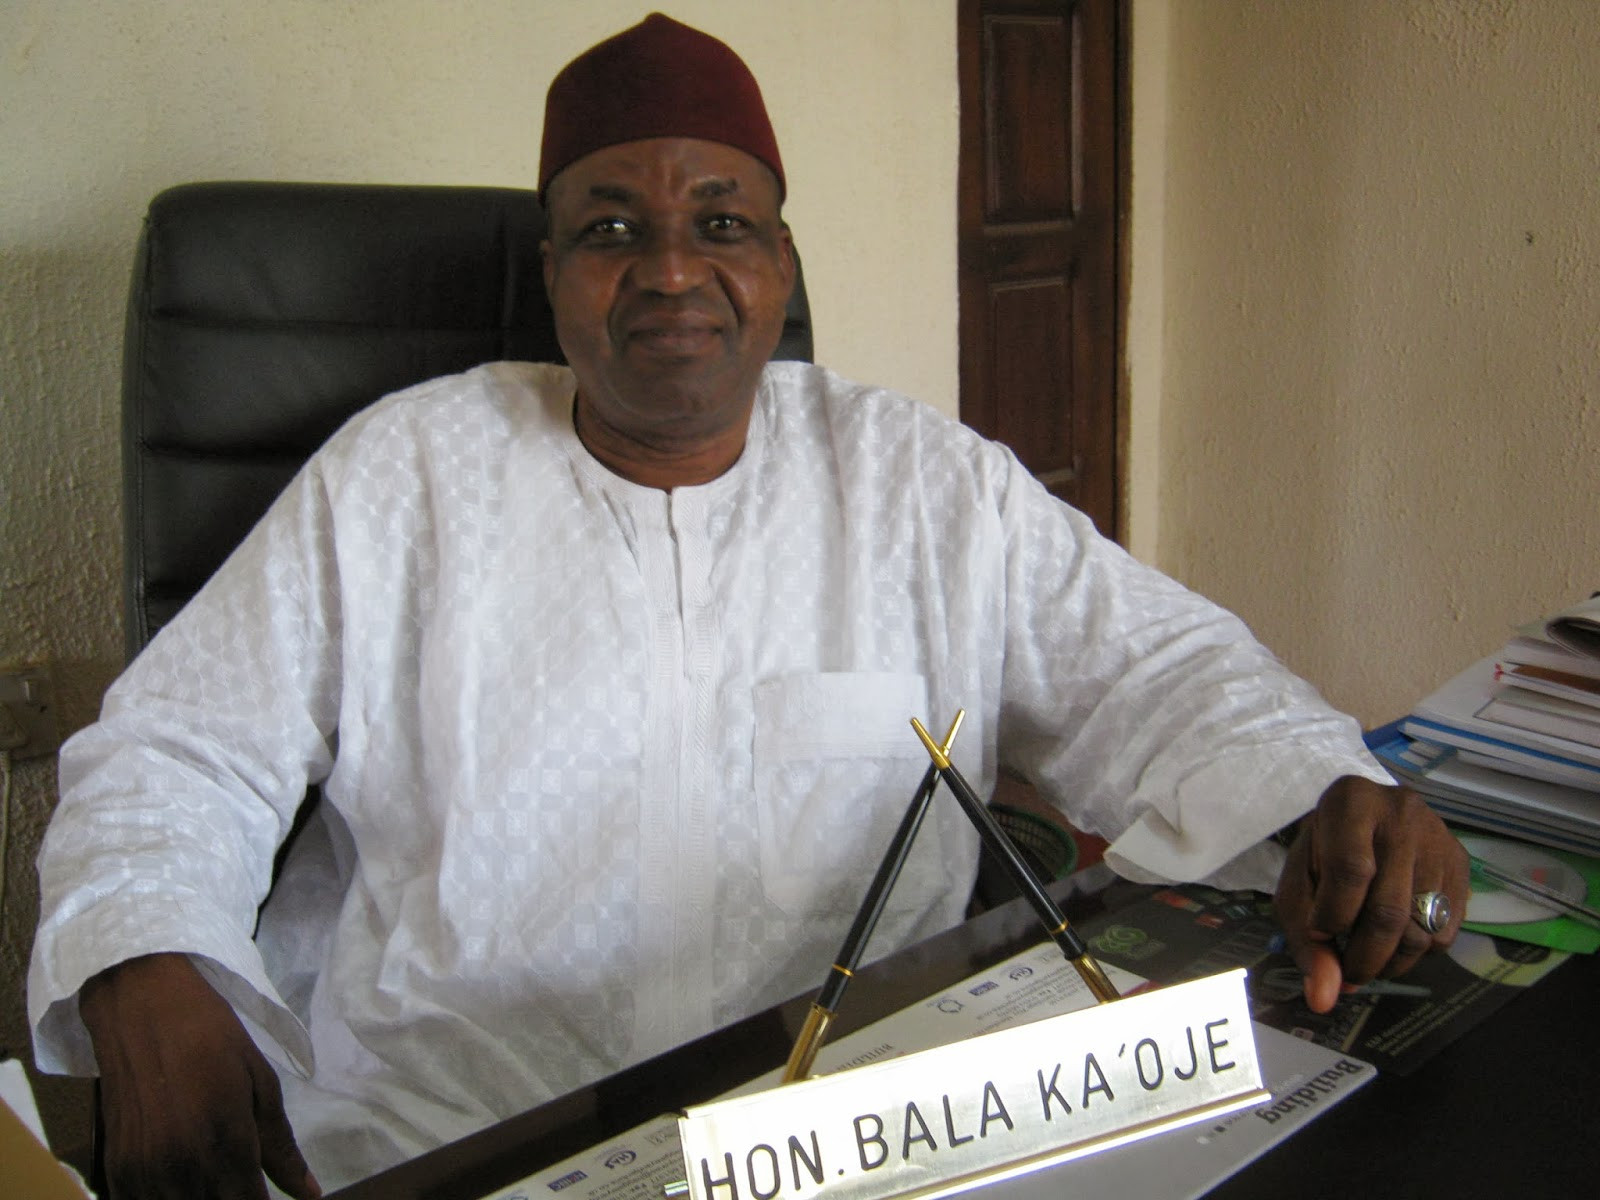 Former Minister of Sports, Bala Bawa Ka?oje, dies at 60